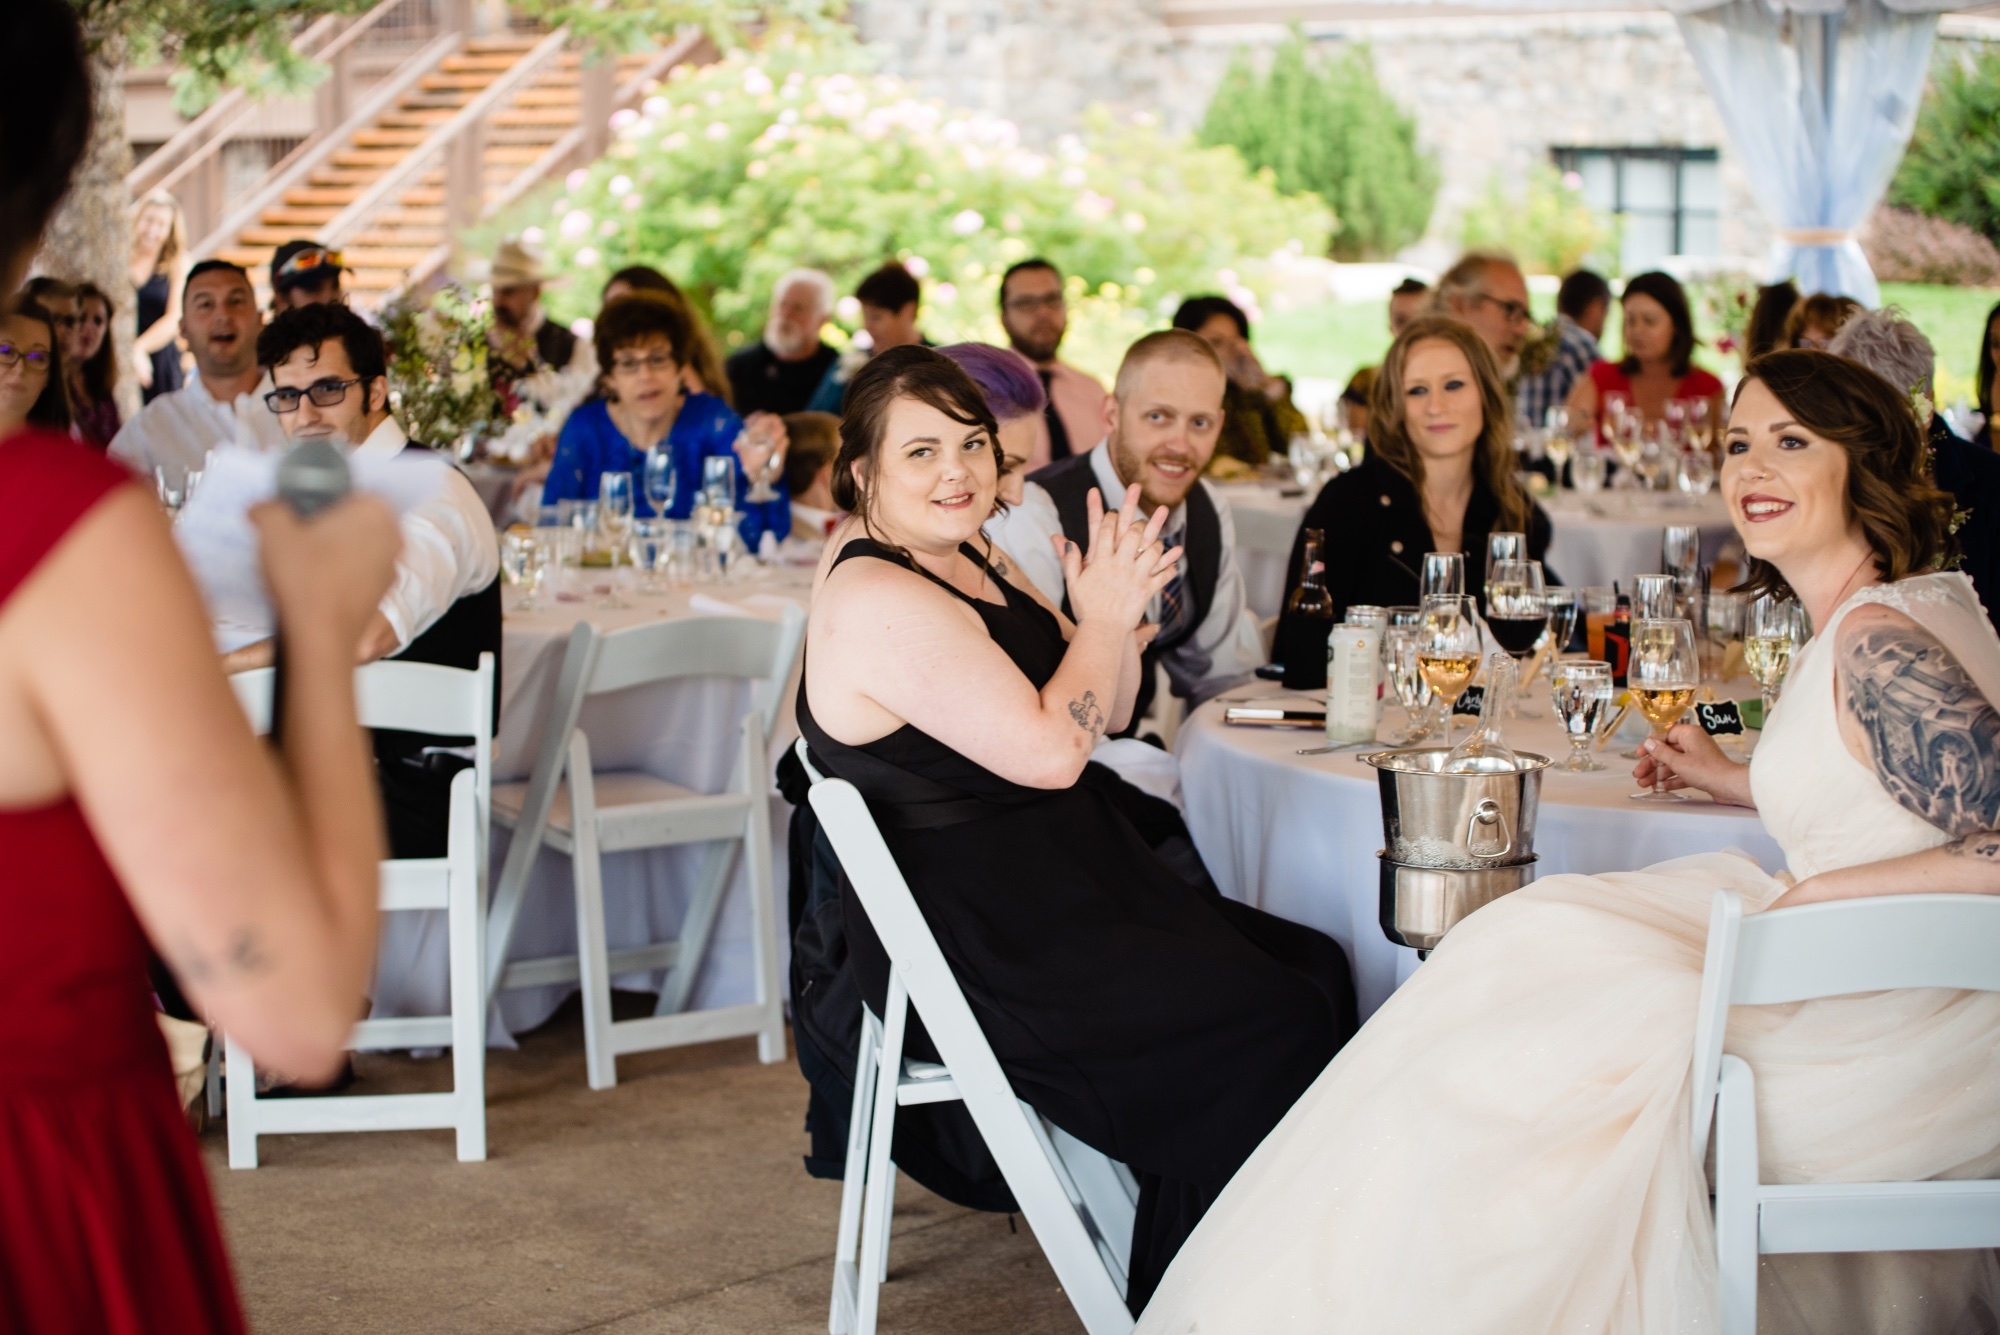 lindseyjanephoto_wedding0086.jpg